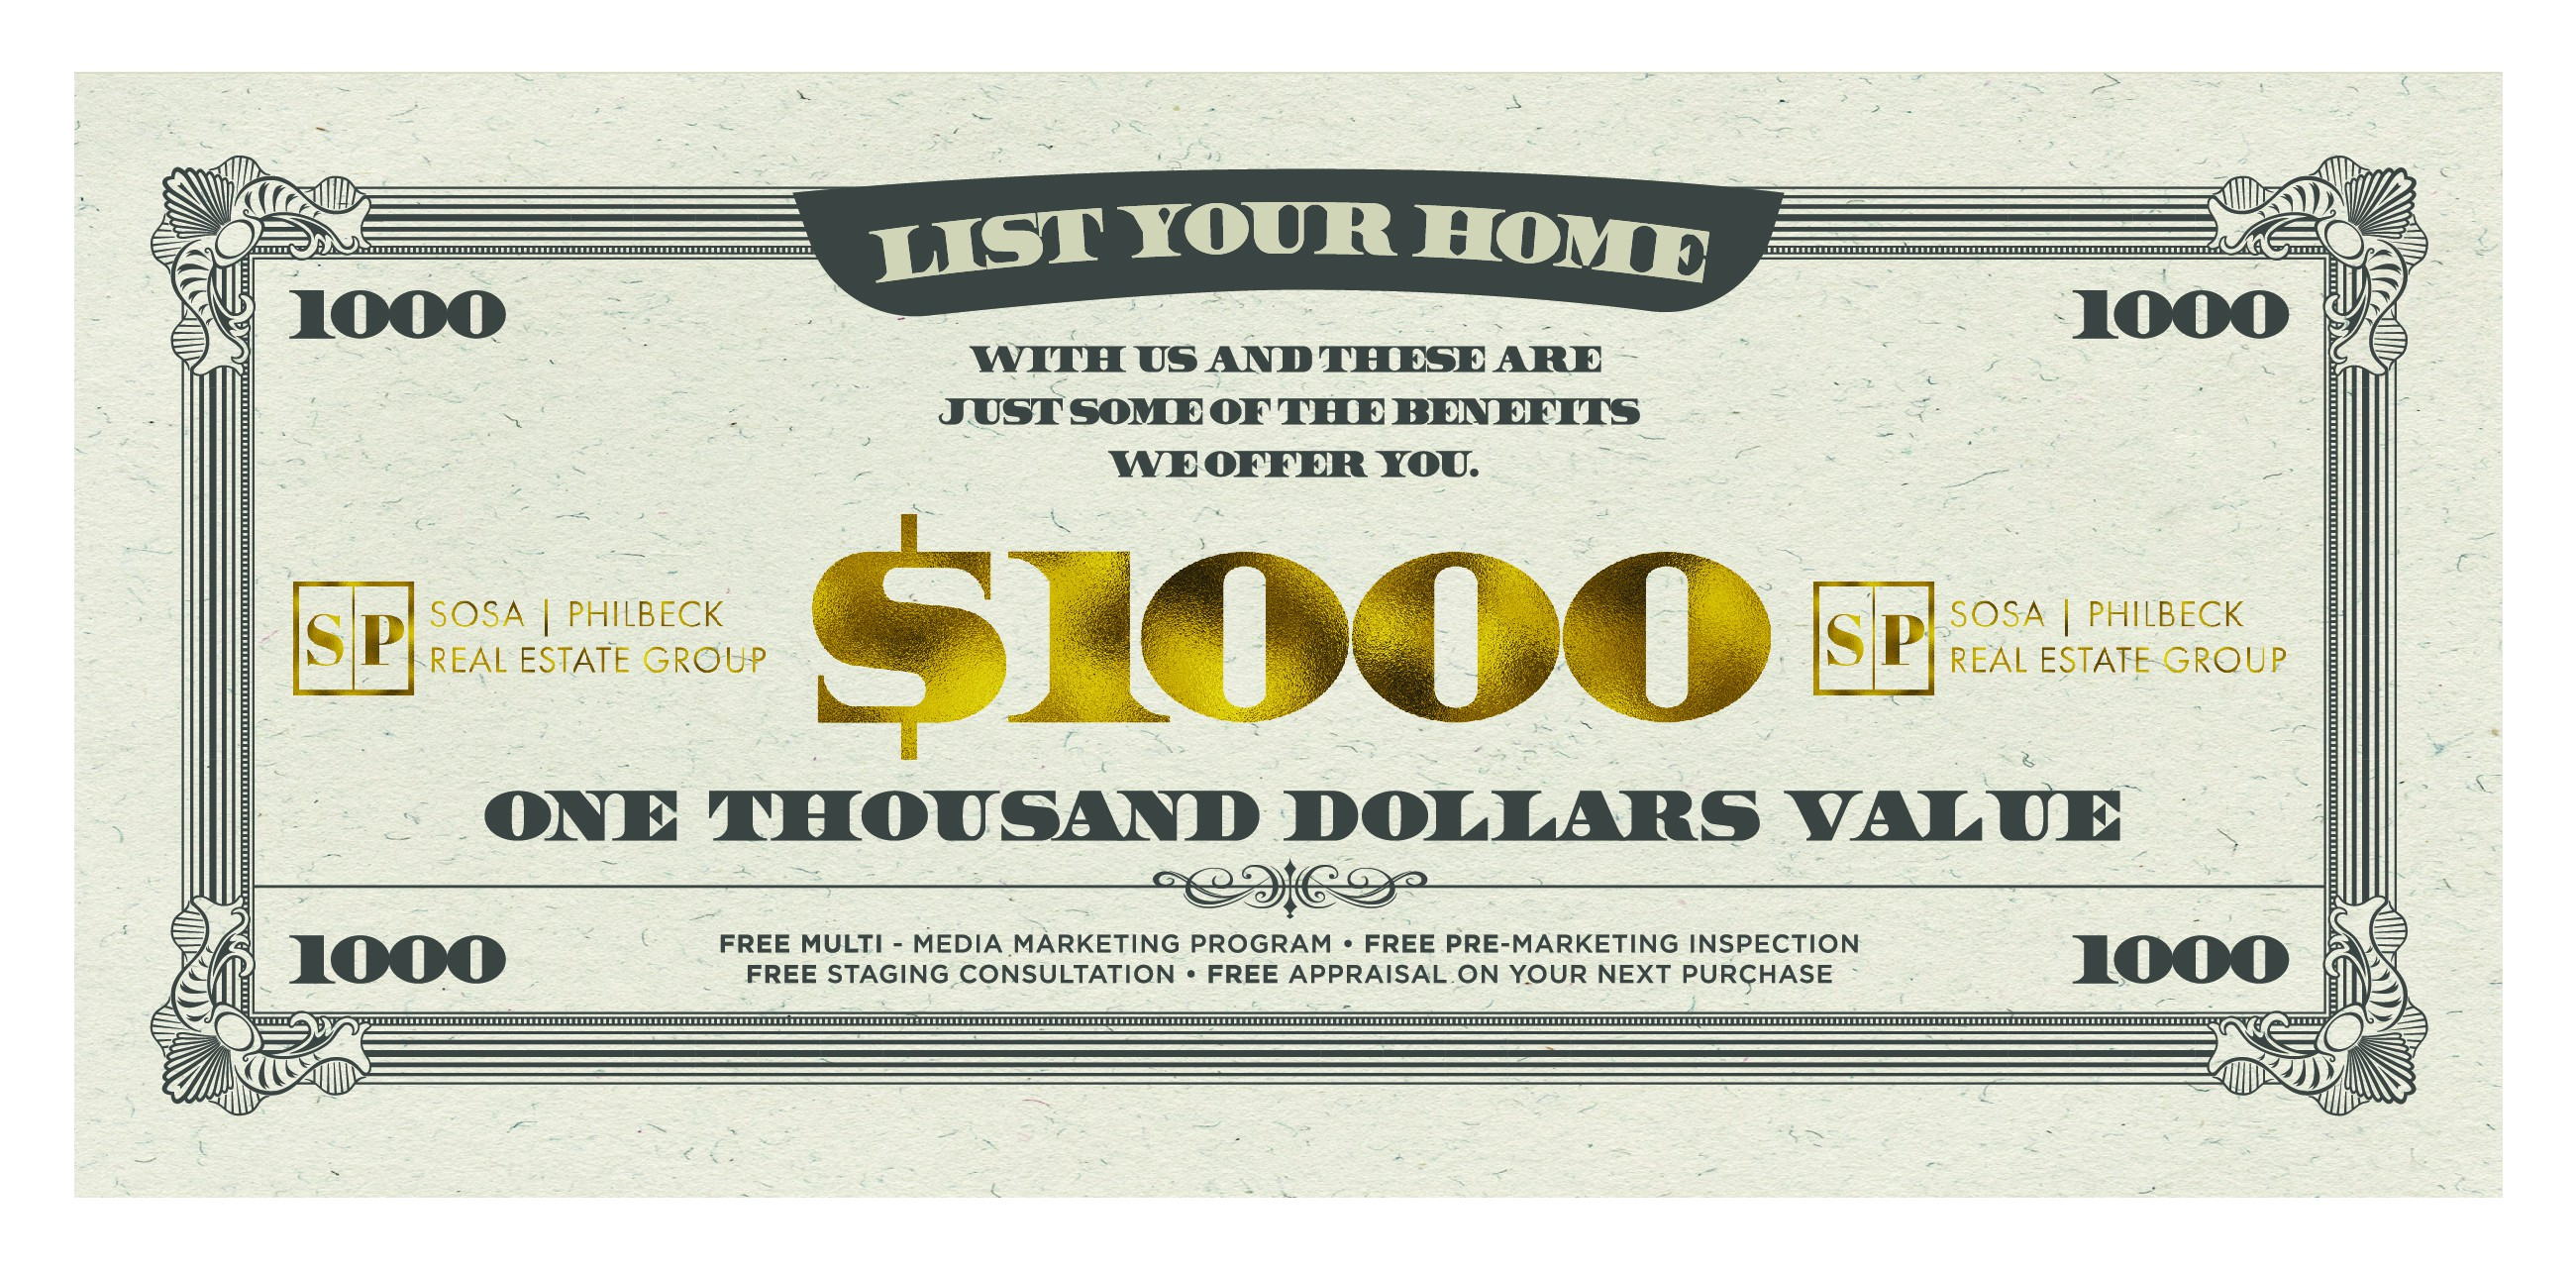 Create an attractive coupon for Sosa Philbeck Real Estate Group